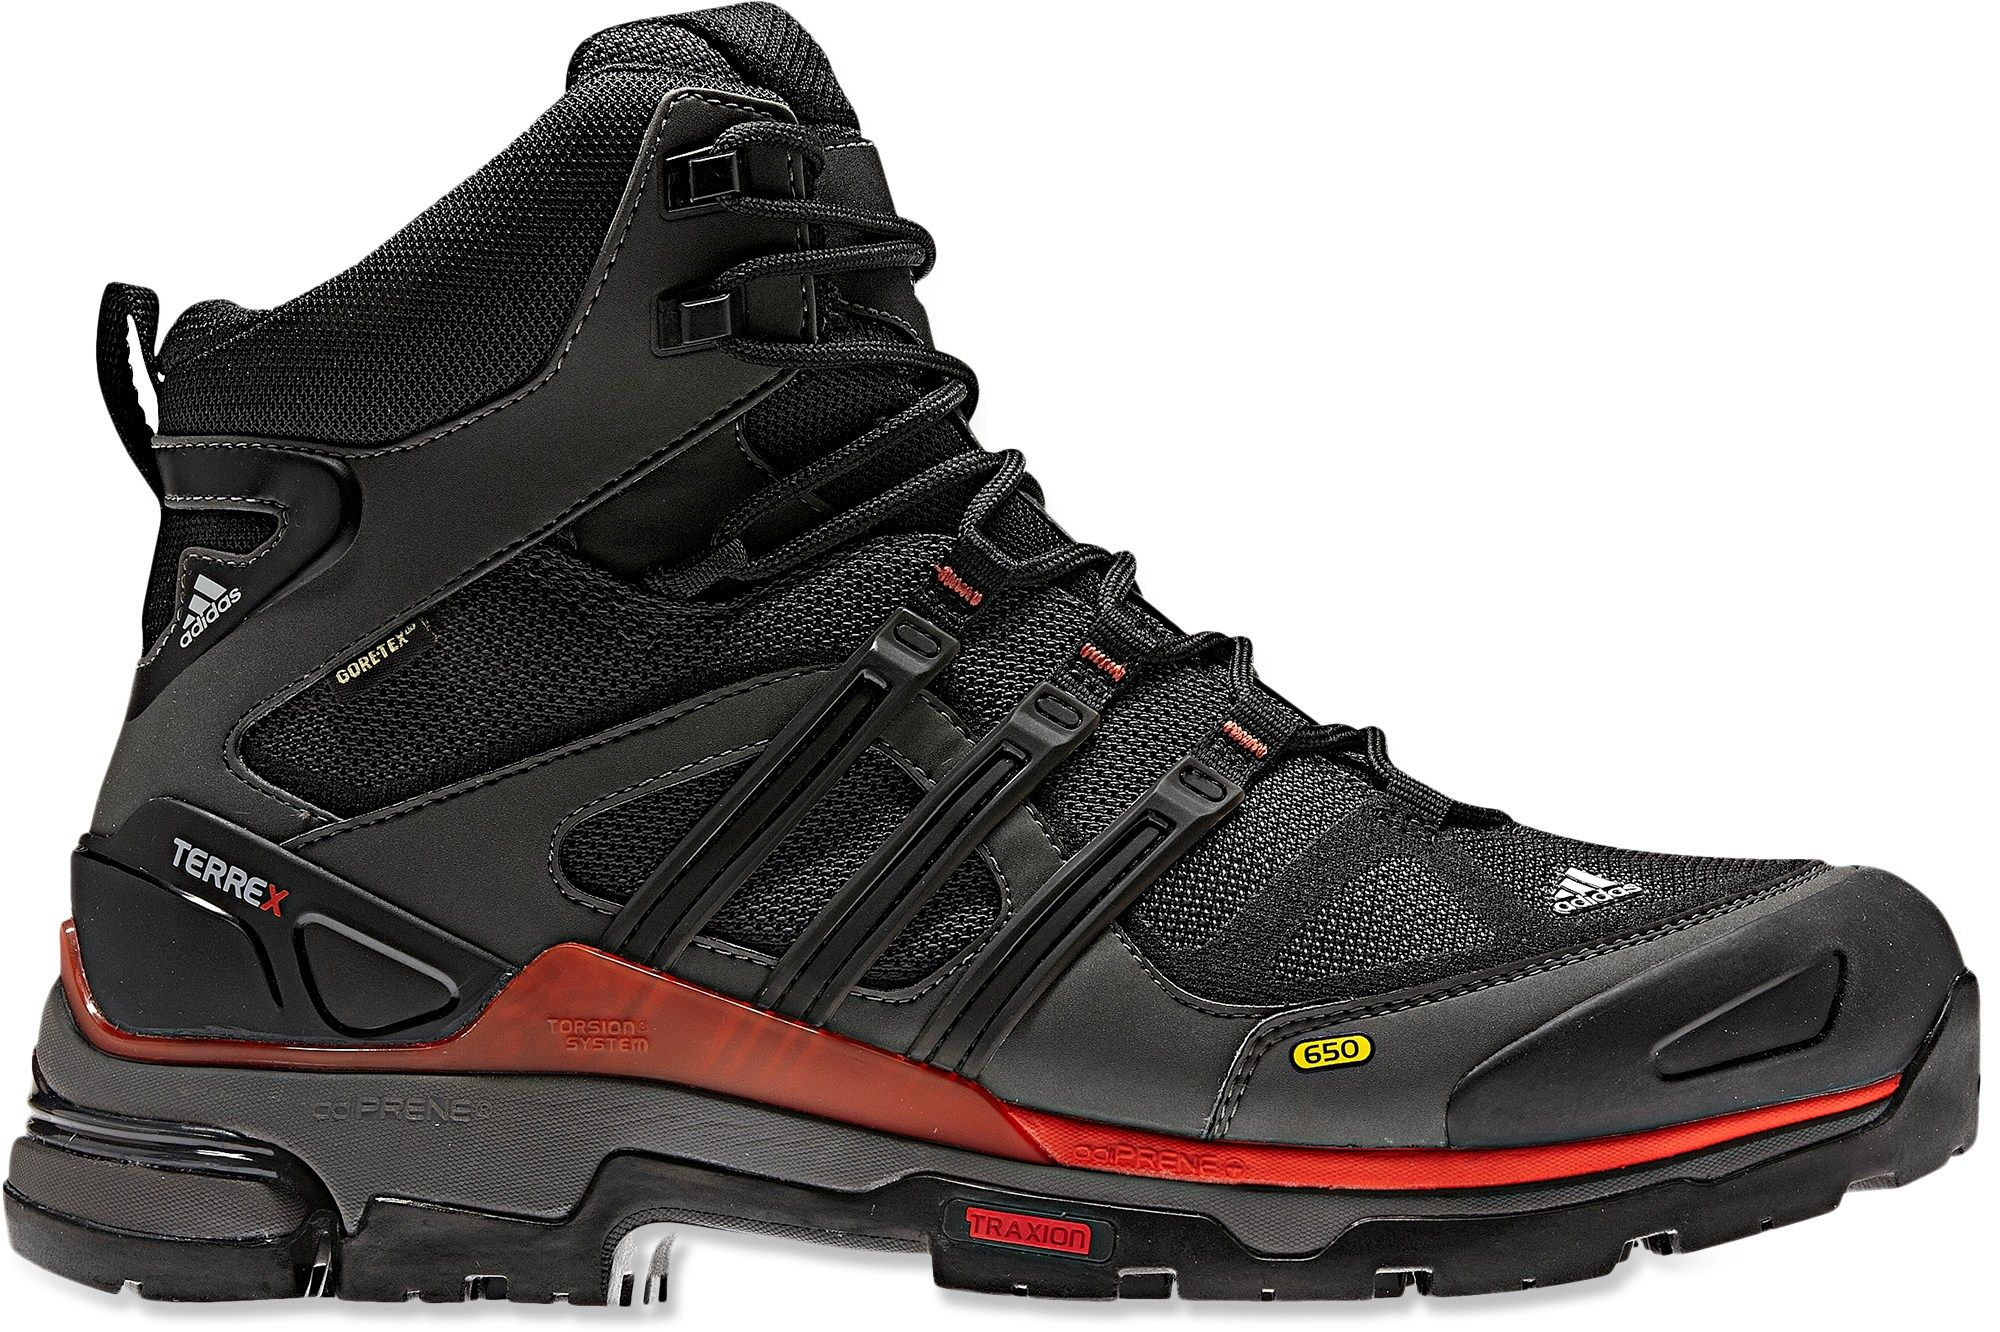 wholesale dealer bb0c2 7b519 Adidas Terrex Fast X Mid GTX Hiking Boots Gore-tex, waterproof,  lightweight, breathable, moisture wicking lining, durable, great traction,  ...